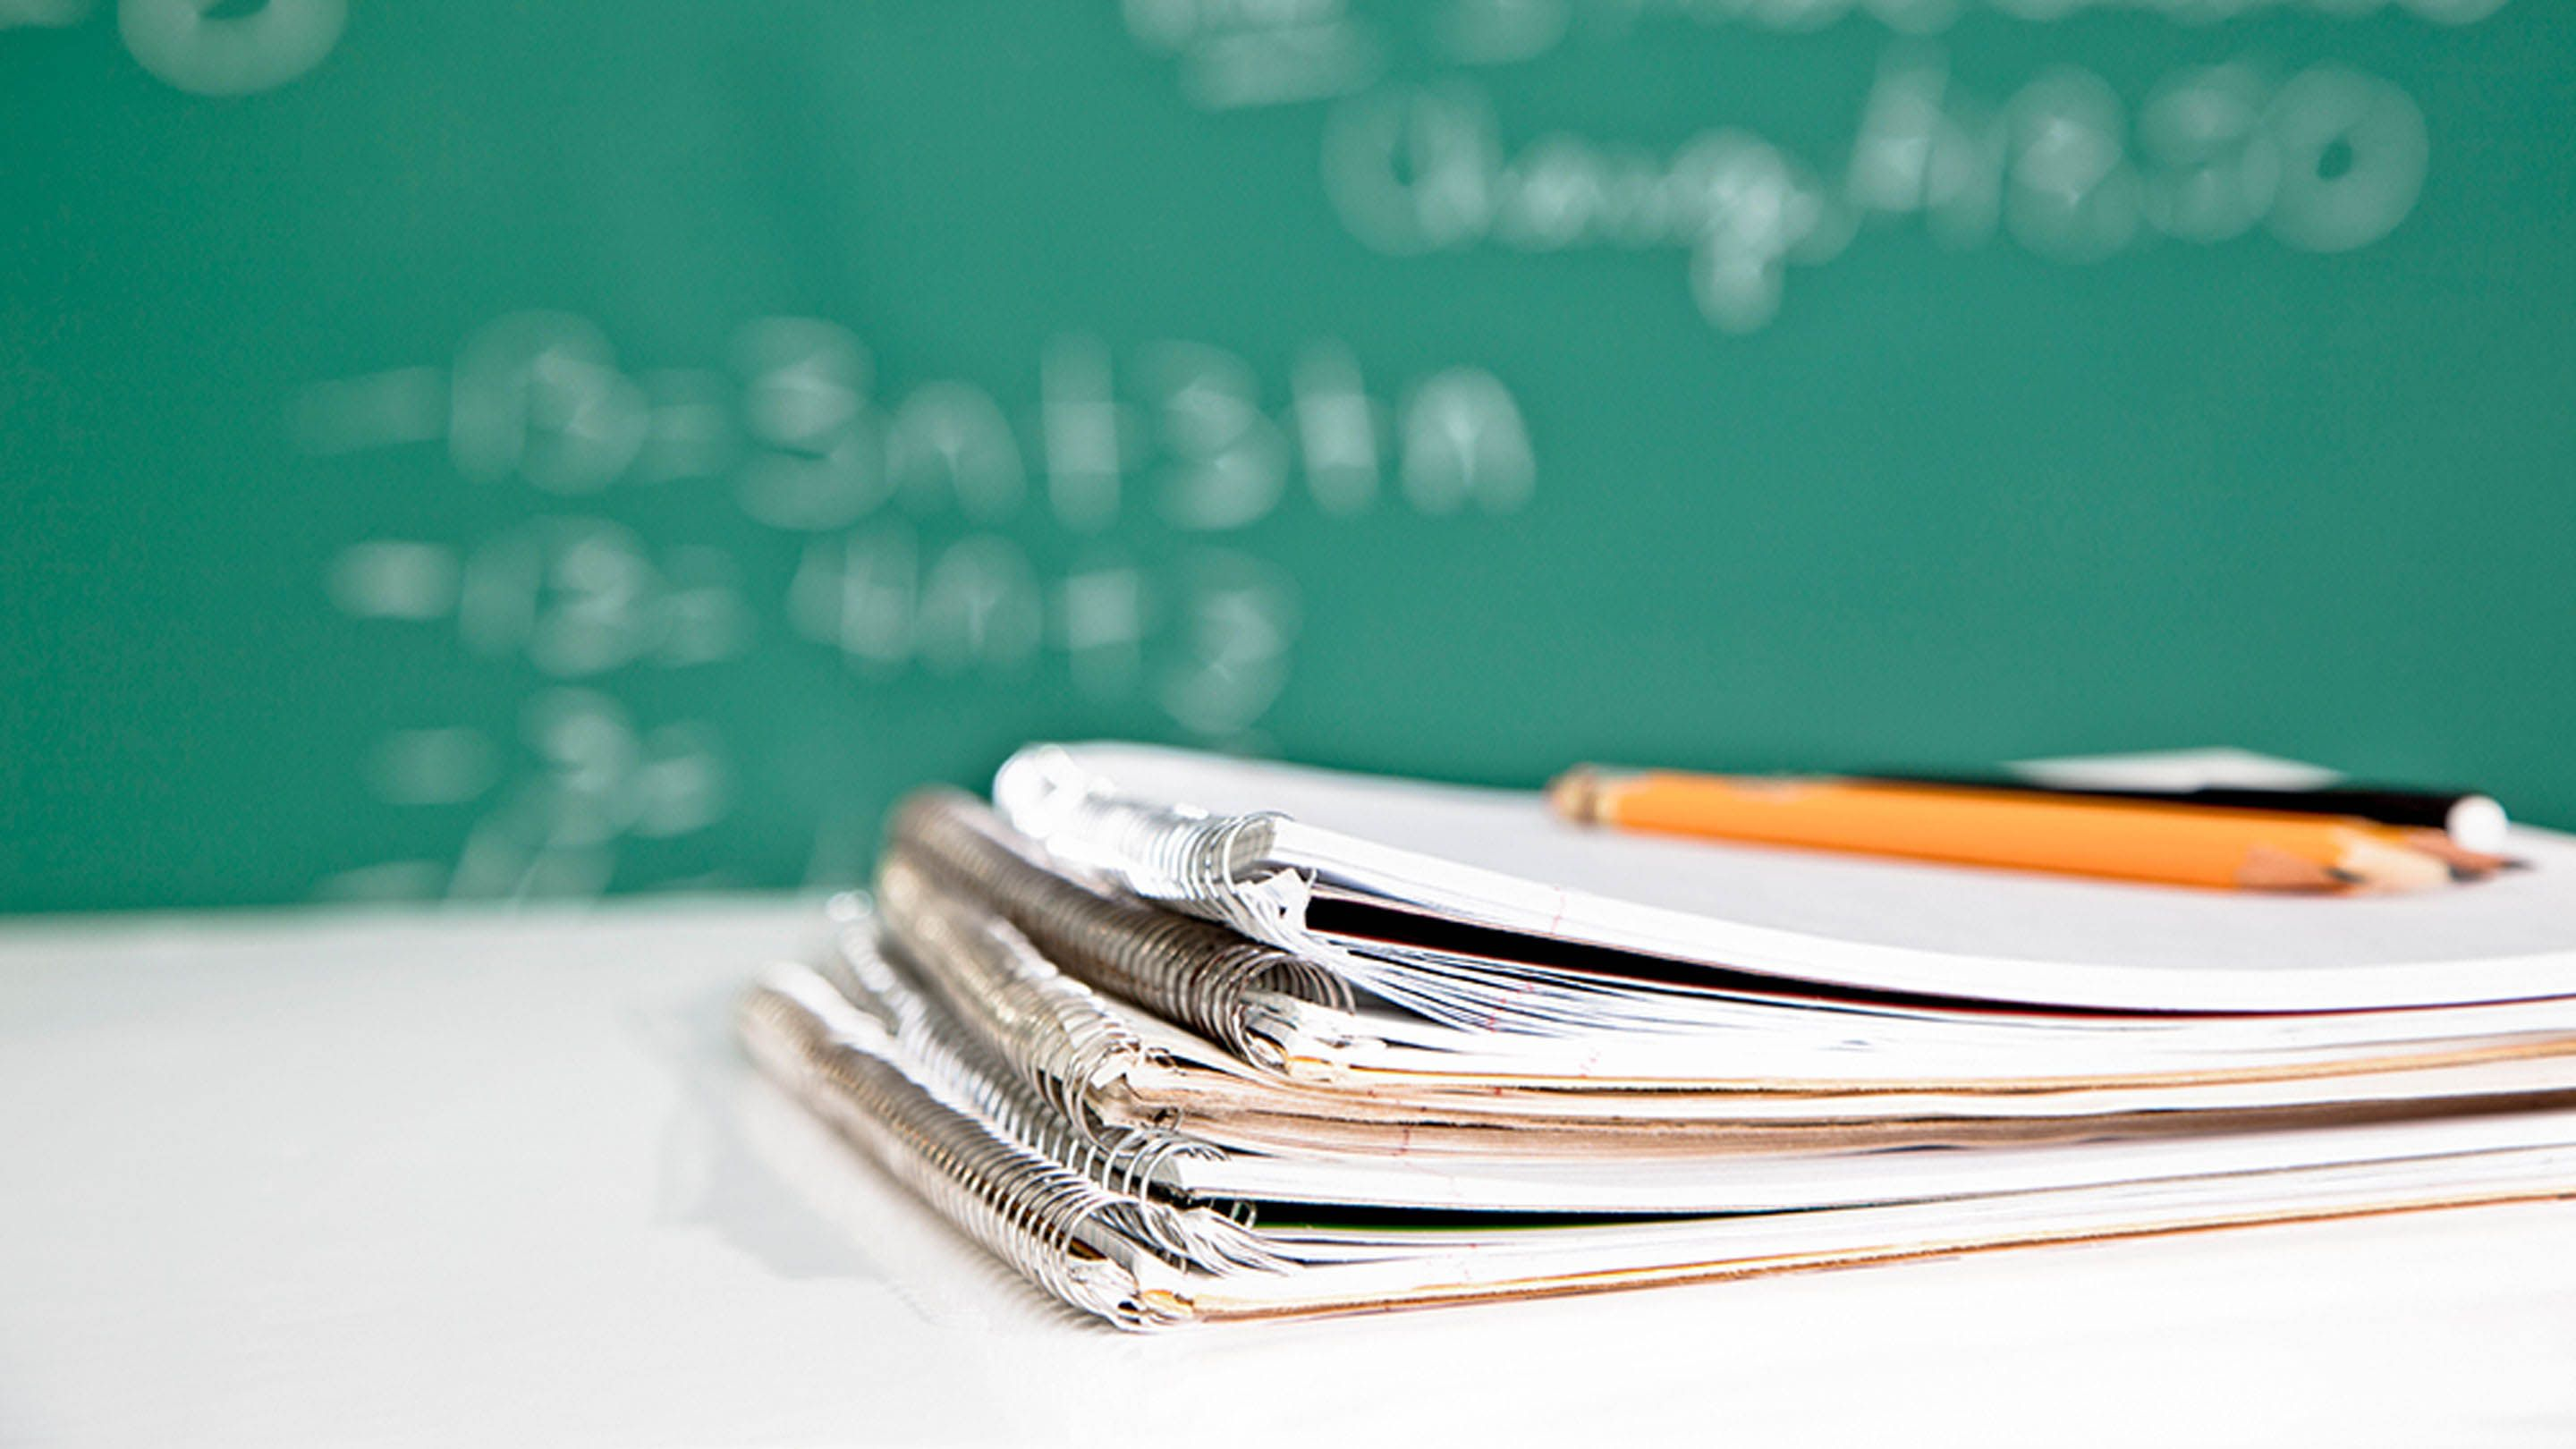 A stack of four notebooks are on a classroom desk with three pencils lying on top of them. A blurred out chalkboard is shown in the background.